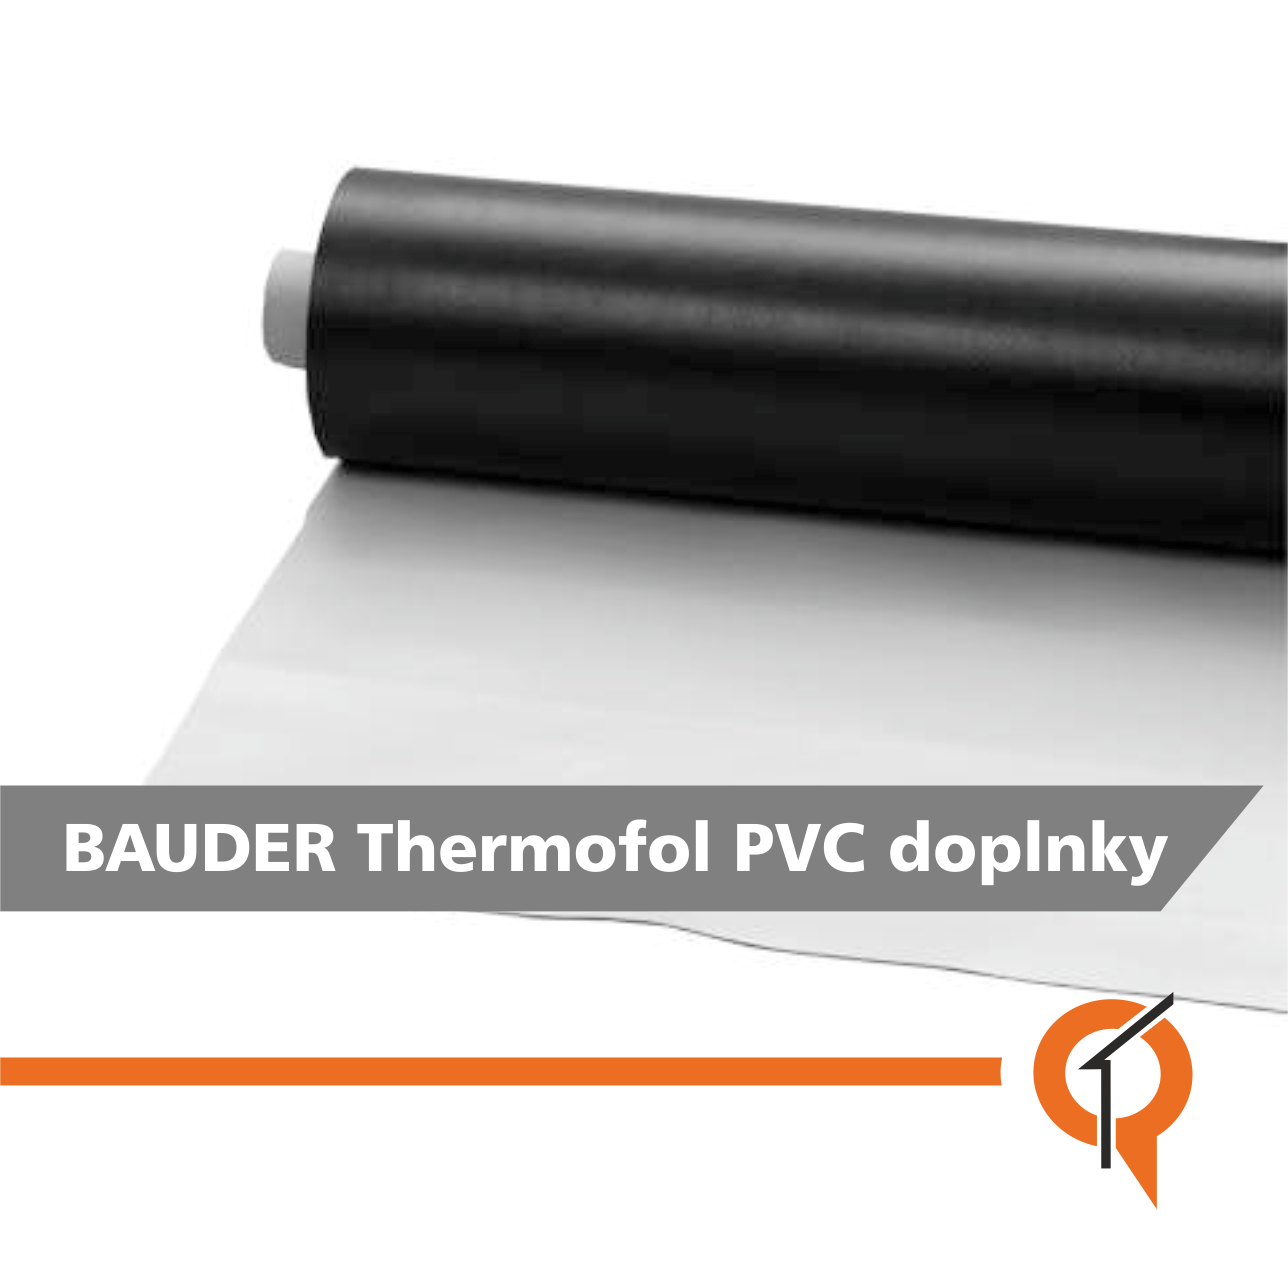 BAUDER_Thermofol_PVC_doplnky_qtrend